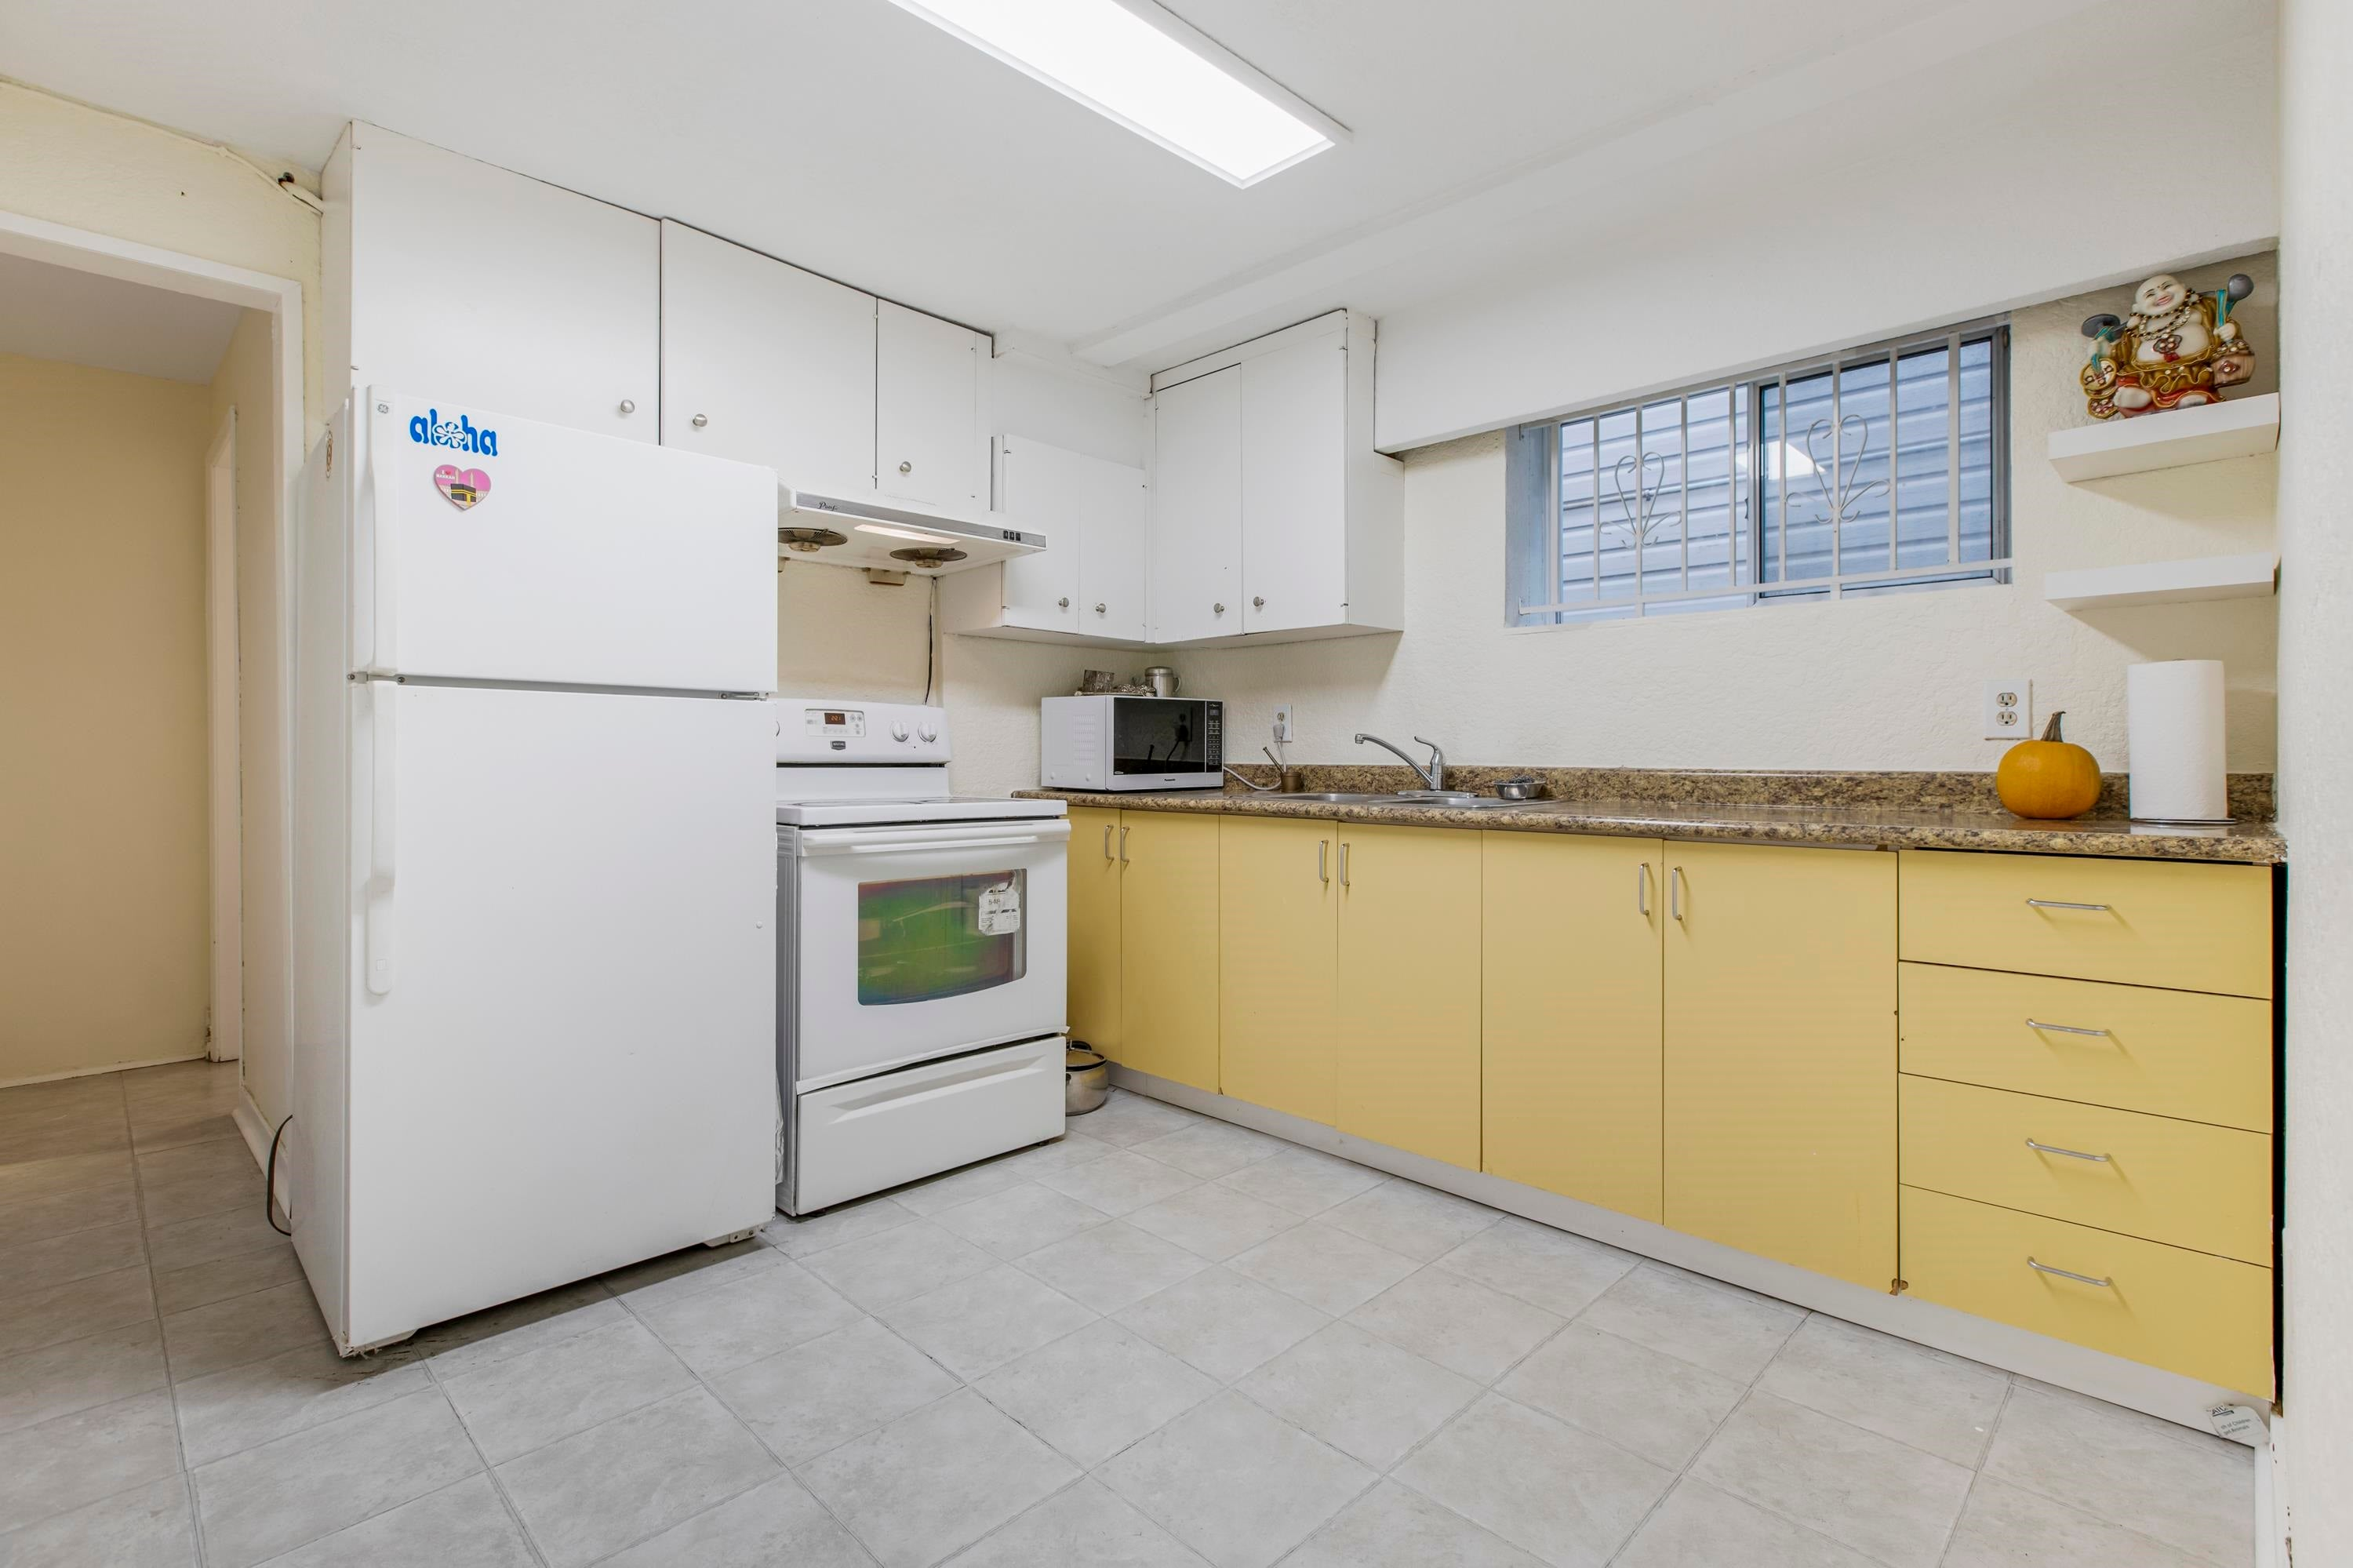 1352 E 57TH AVENUE - South Vancouver House/Single Family for sale, 4 Bedrooms (R2625705) - #16